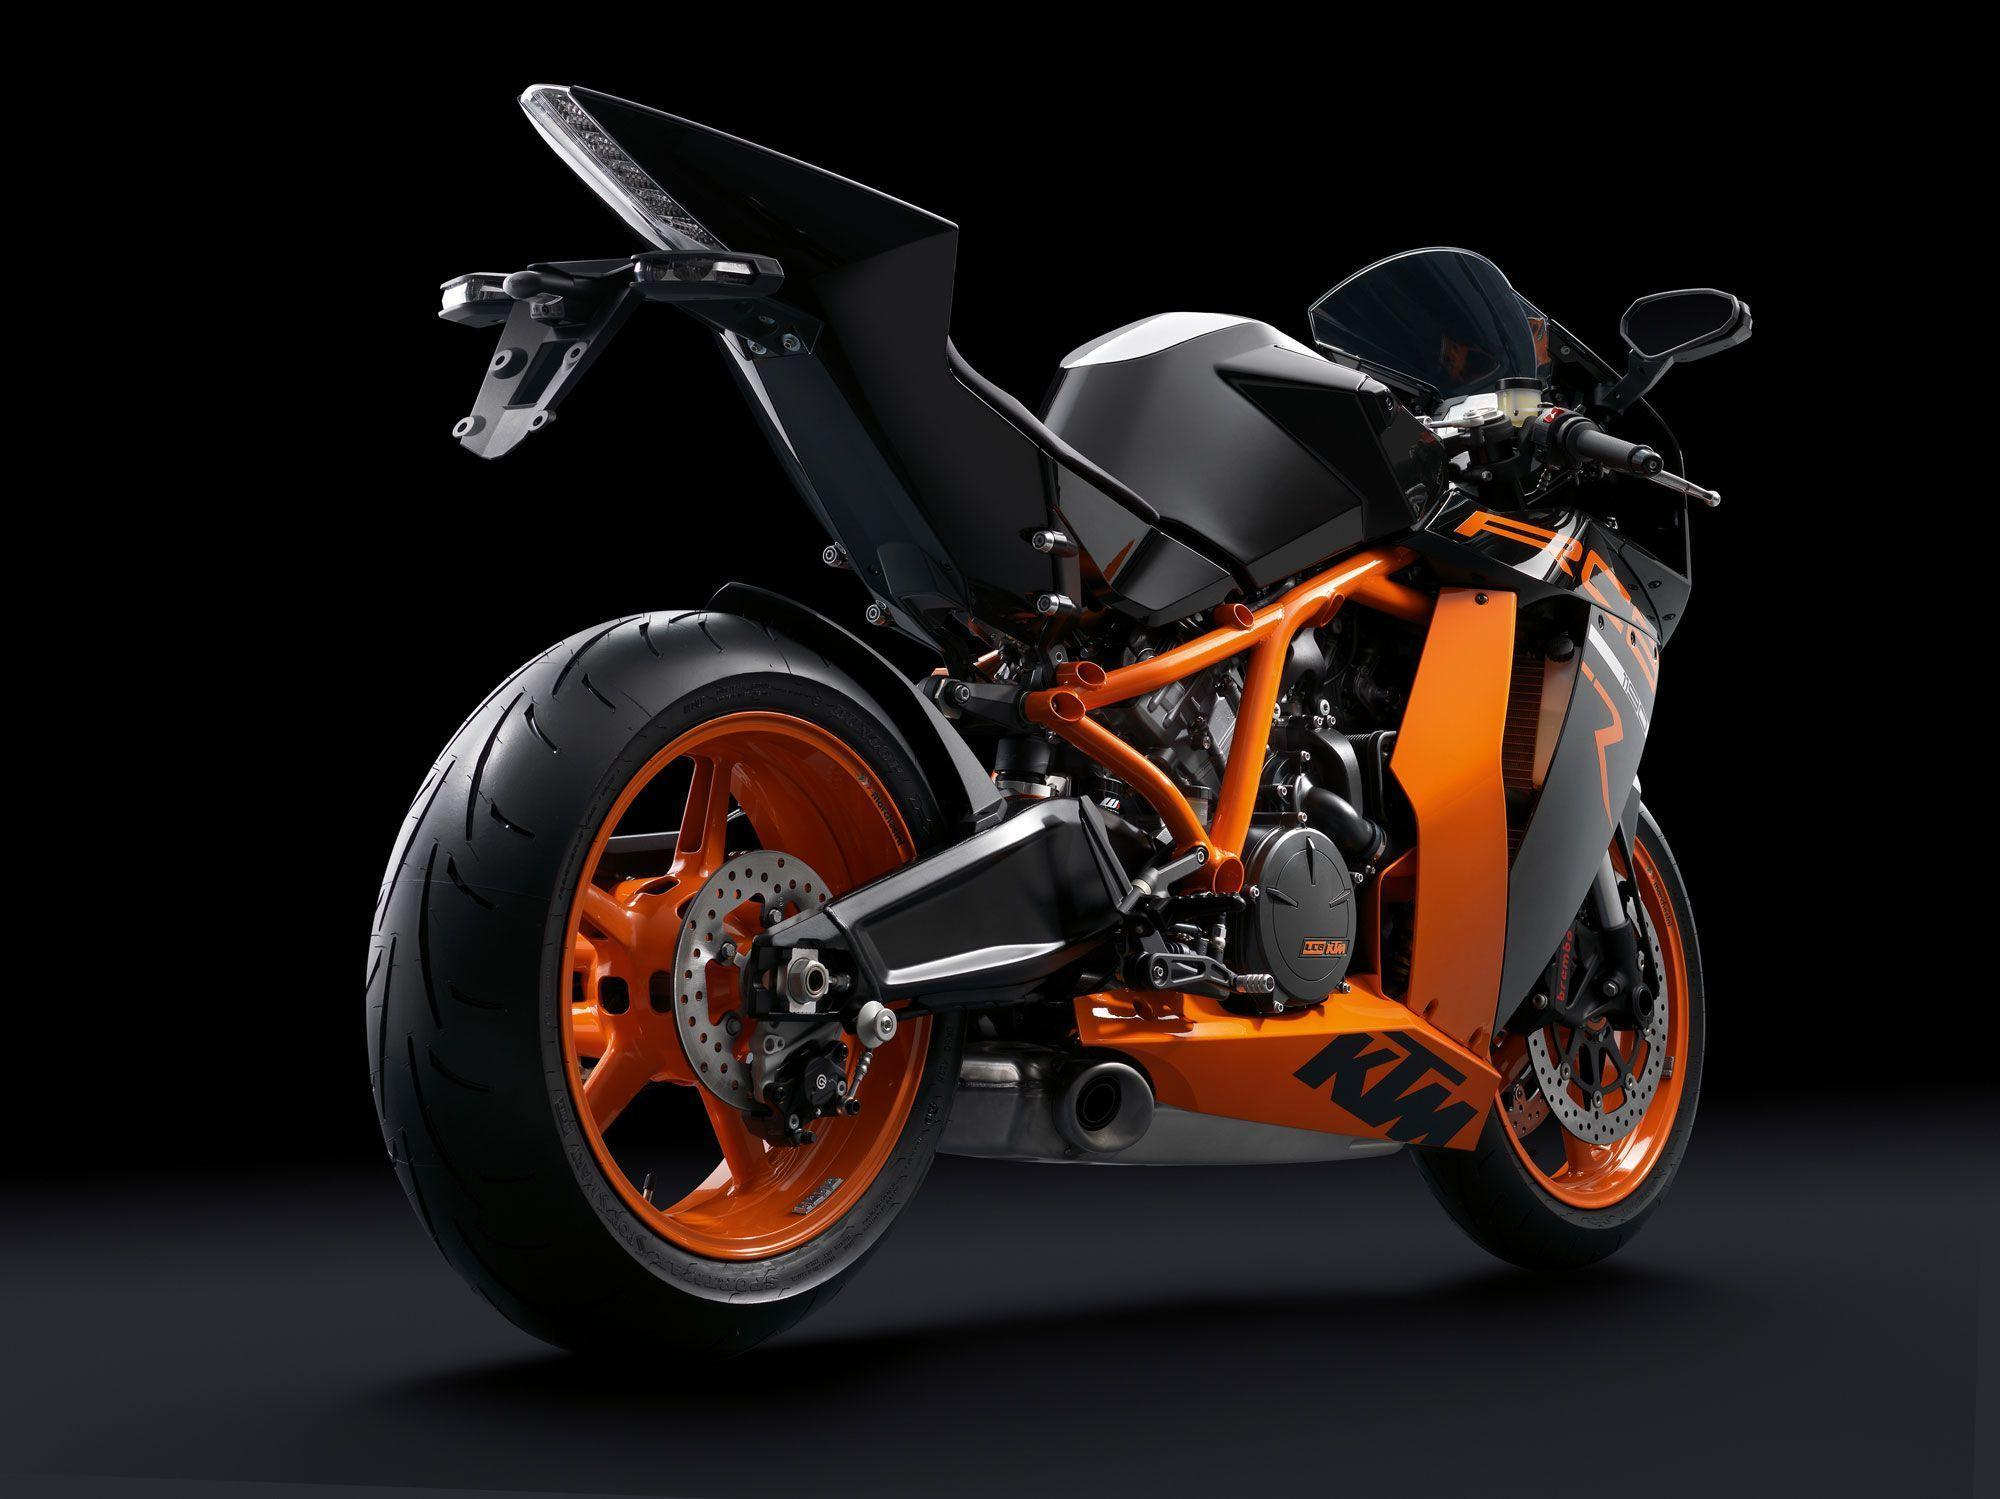 KTM 1190 RC8 R 2014 Wallpapers